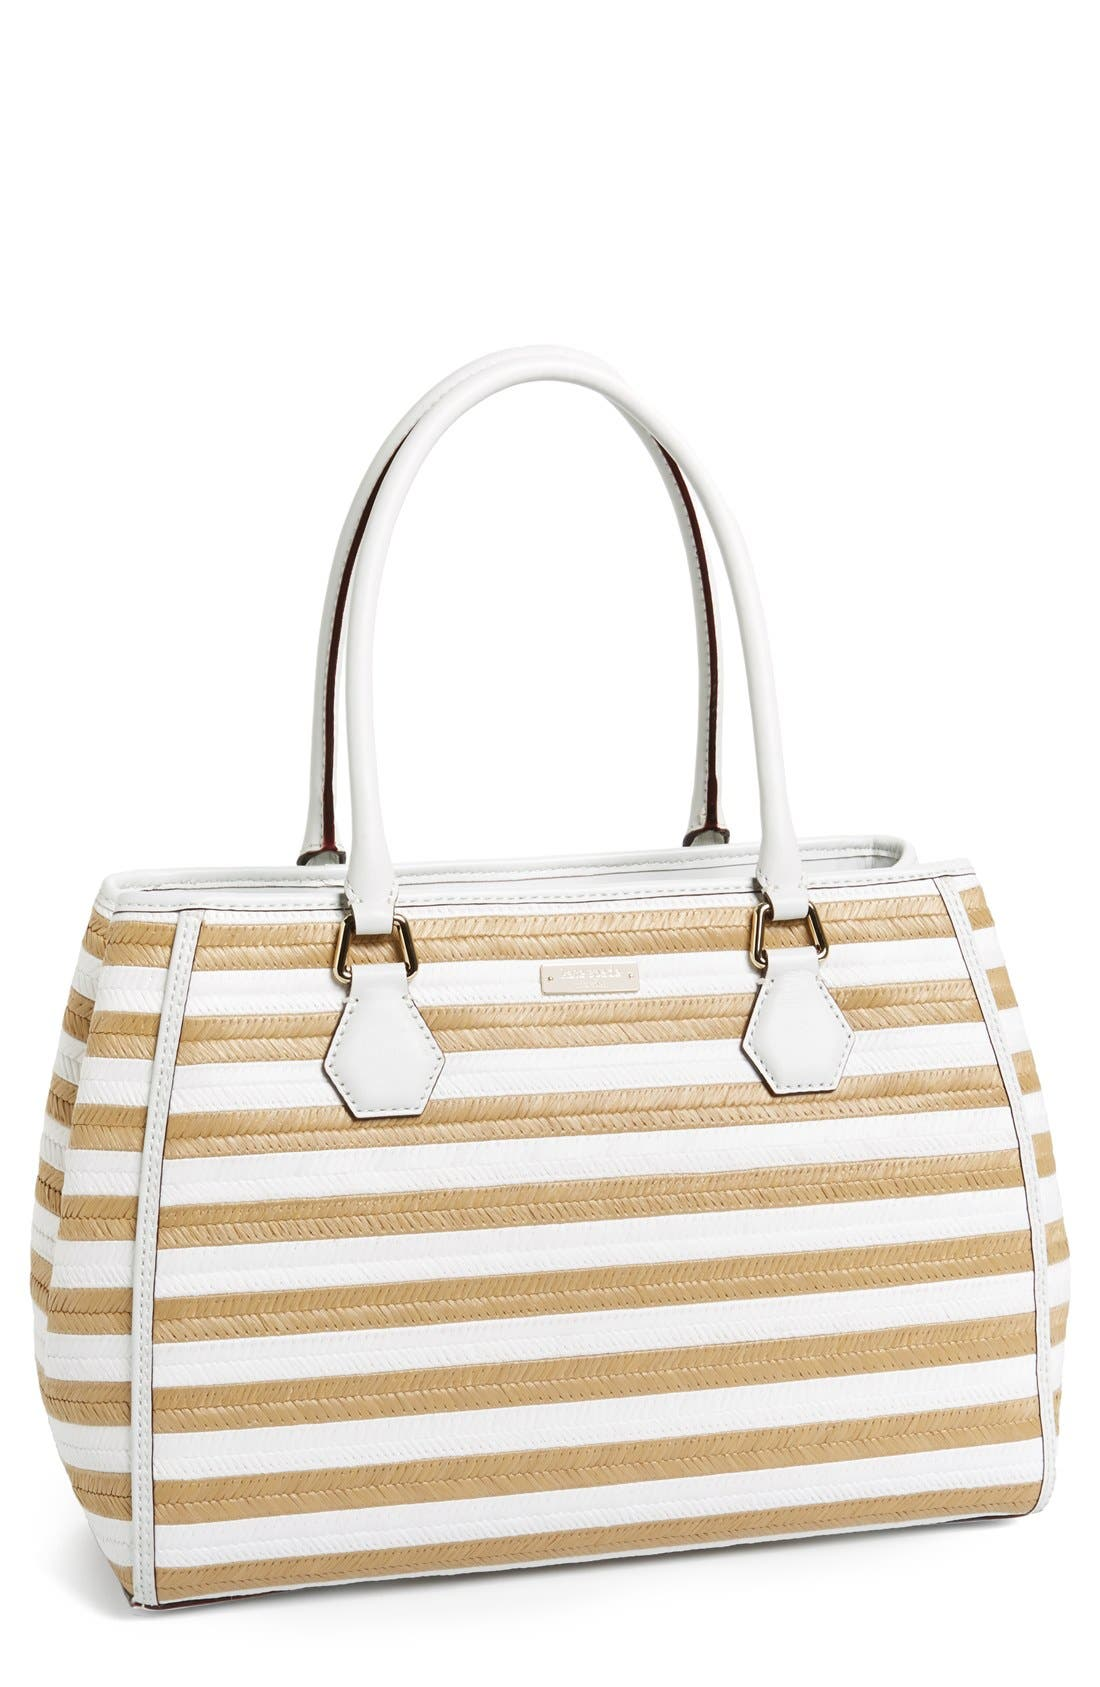 Alternate Image 1 Selected - kate spade new york 'catherine street - wensley' straw tote